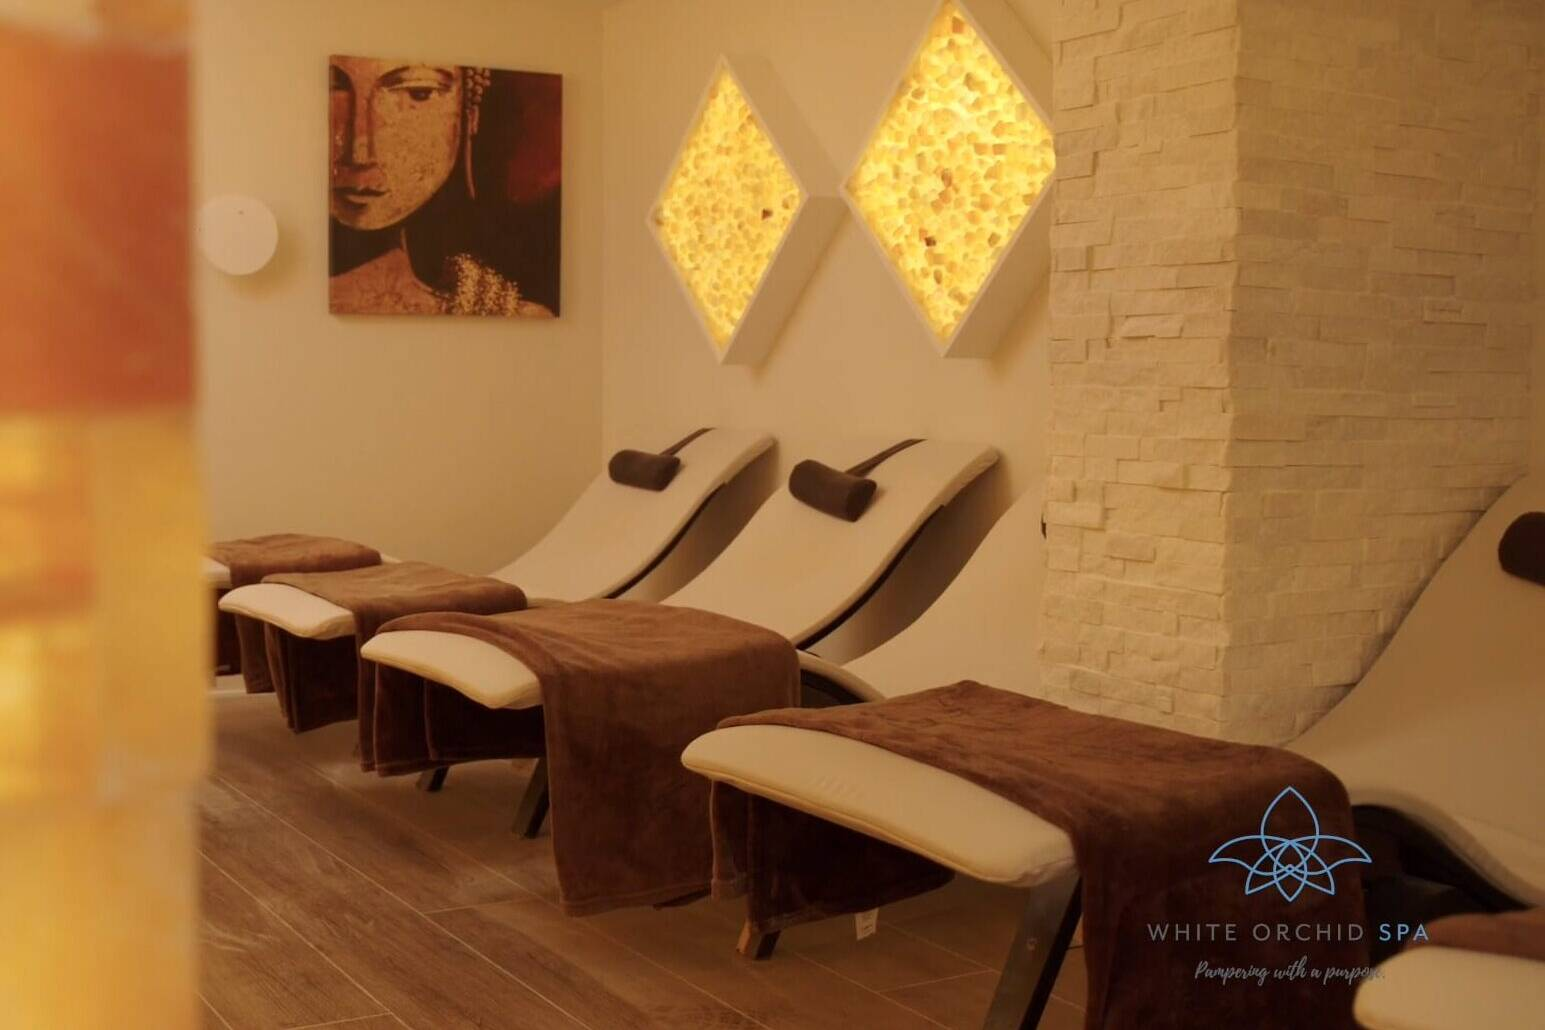 Pre roll video produced for White Orchid Spa and used for digital advertising.